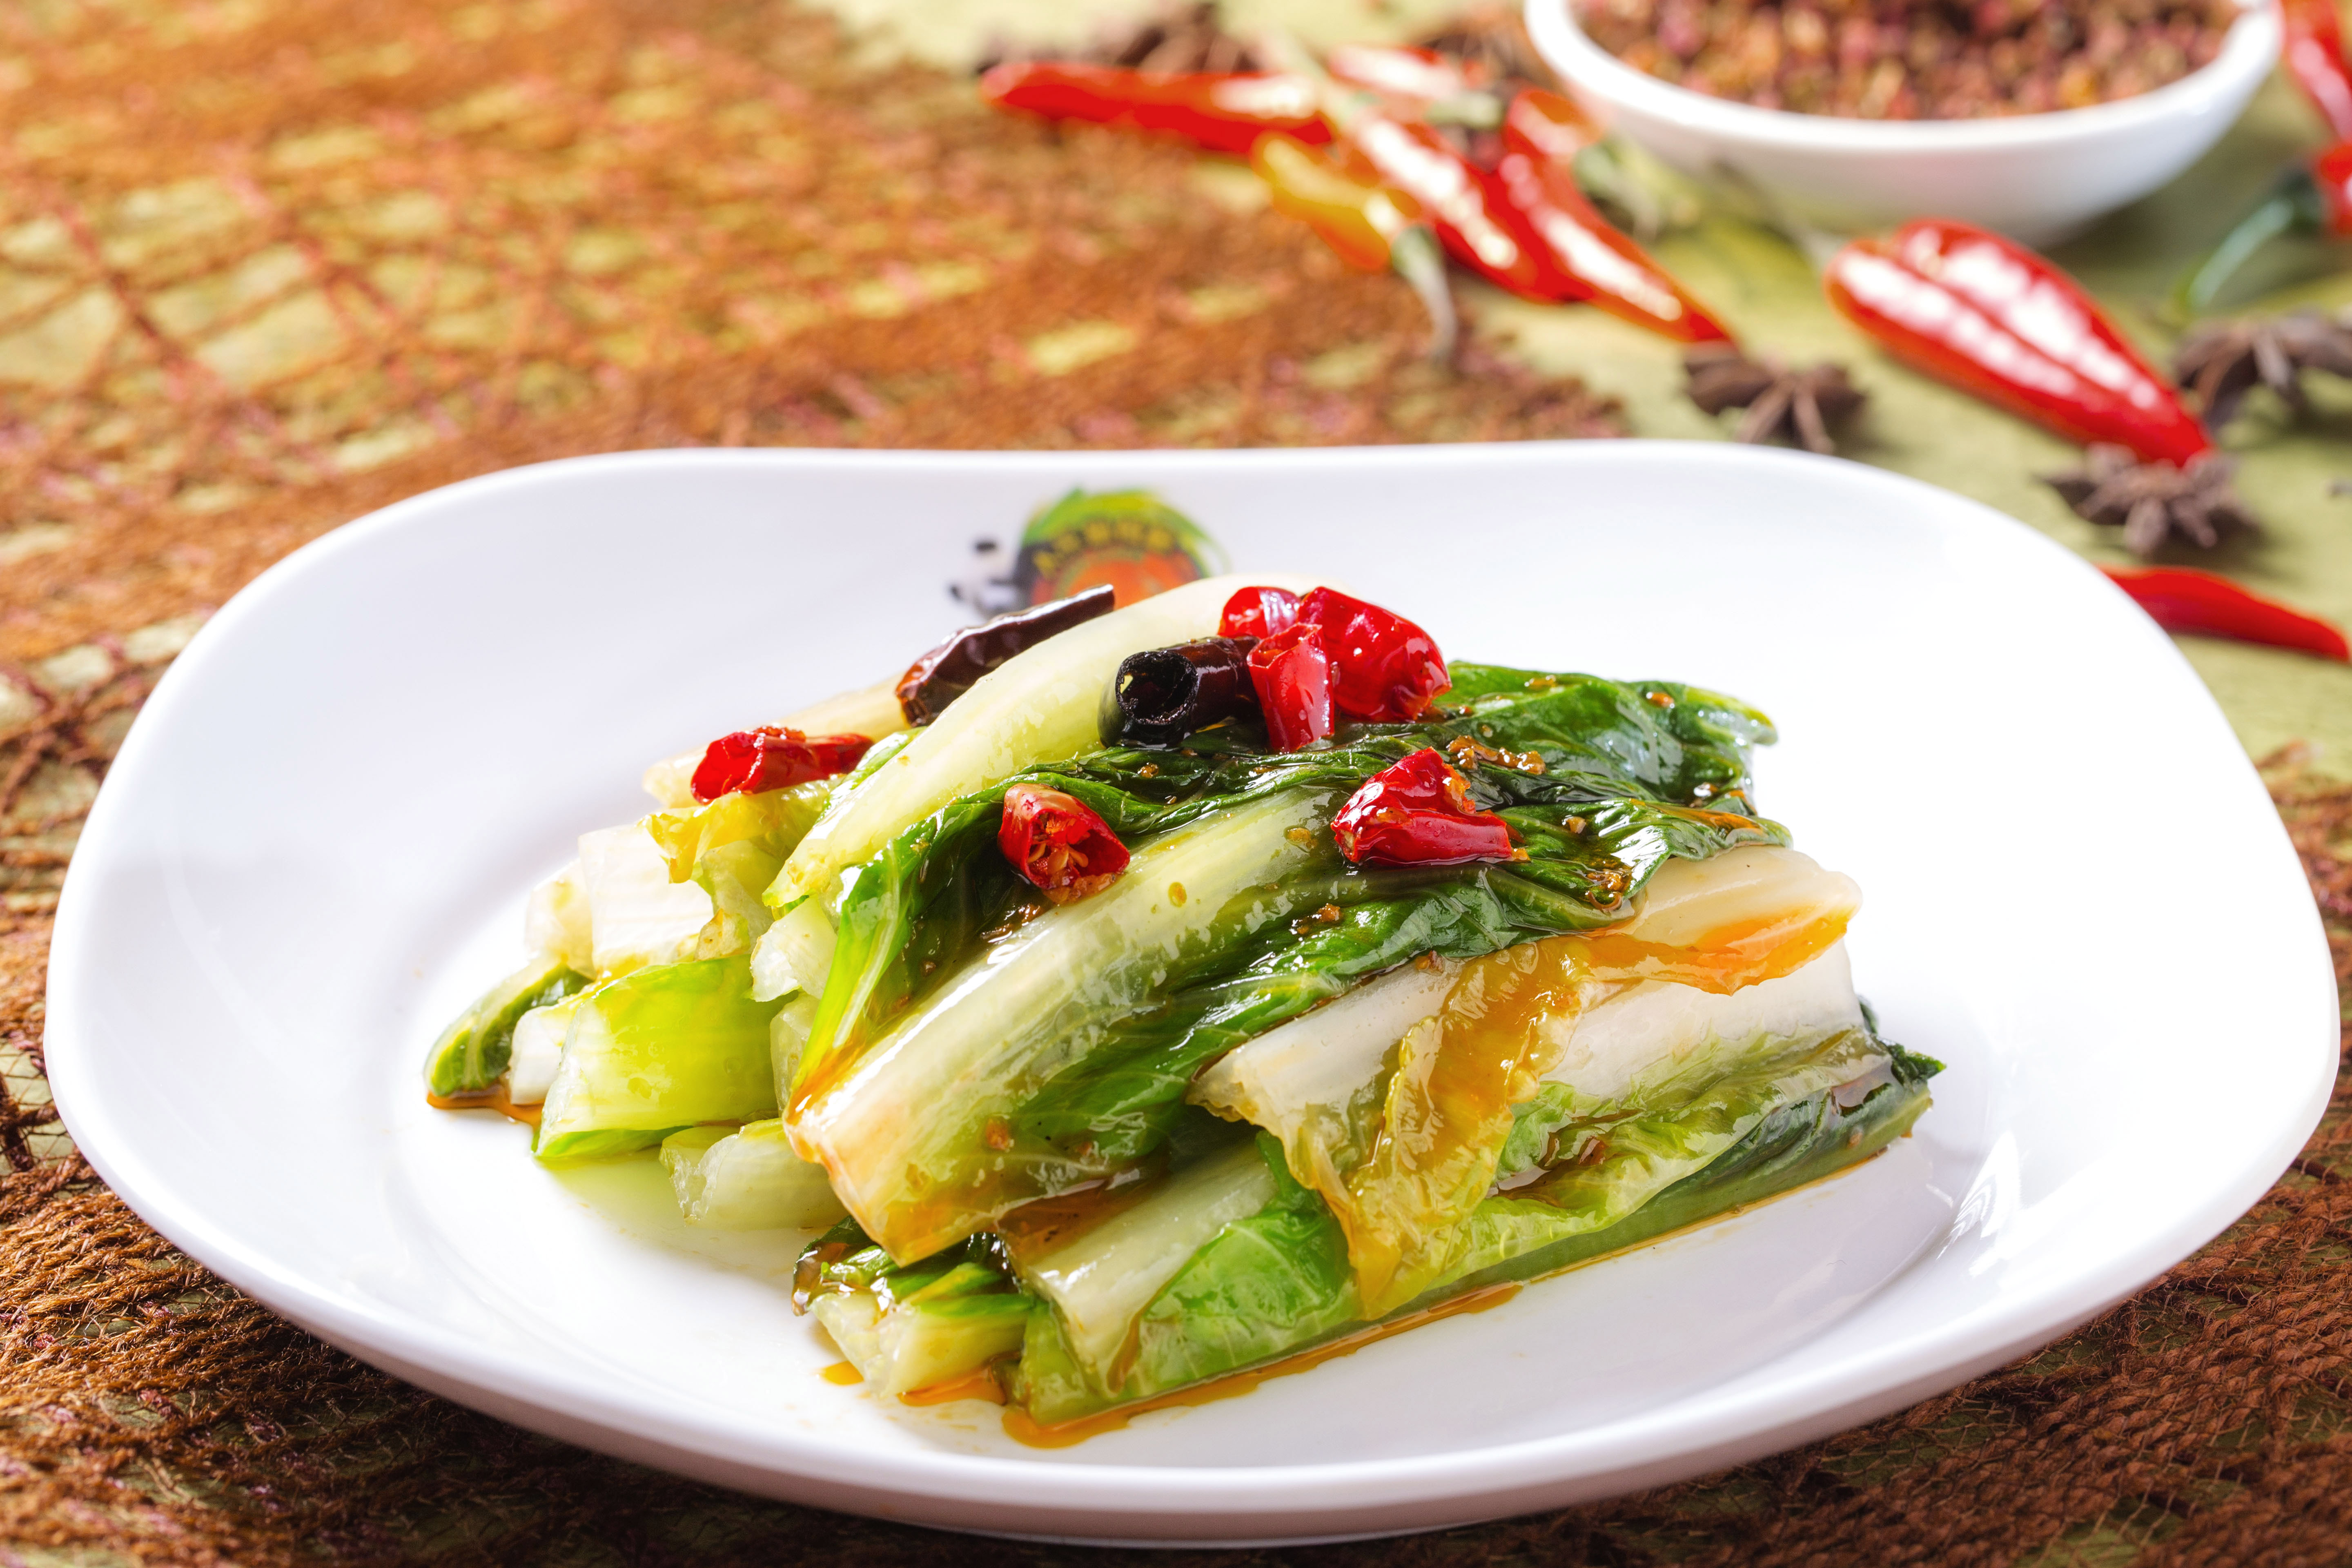 Sauteed Lettuces with Chili